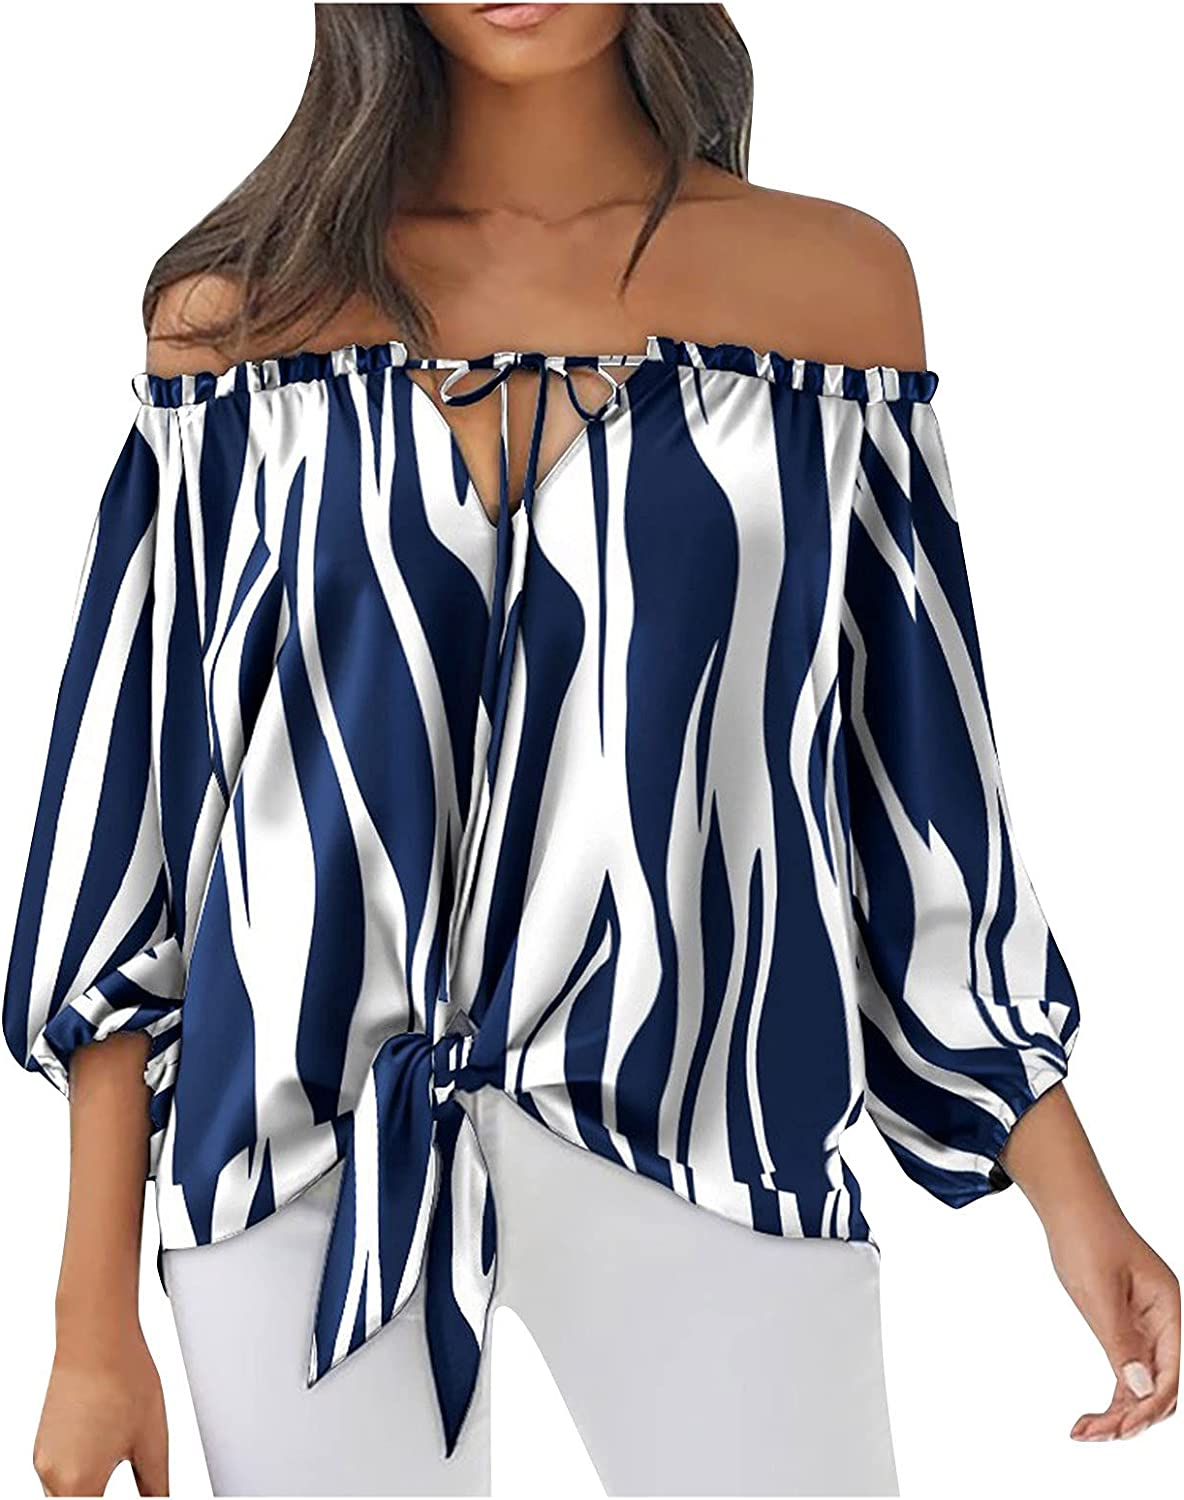 XINXX Womens Summer Sexy Cold Shoulder Tops Bow Tie 3/4 Bell Sleeve Striped Tees Loose Fit Tunic Shirts